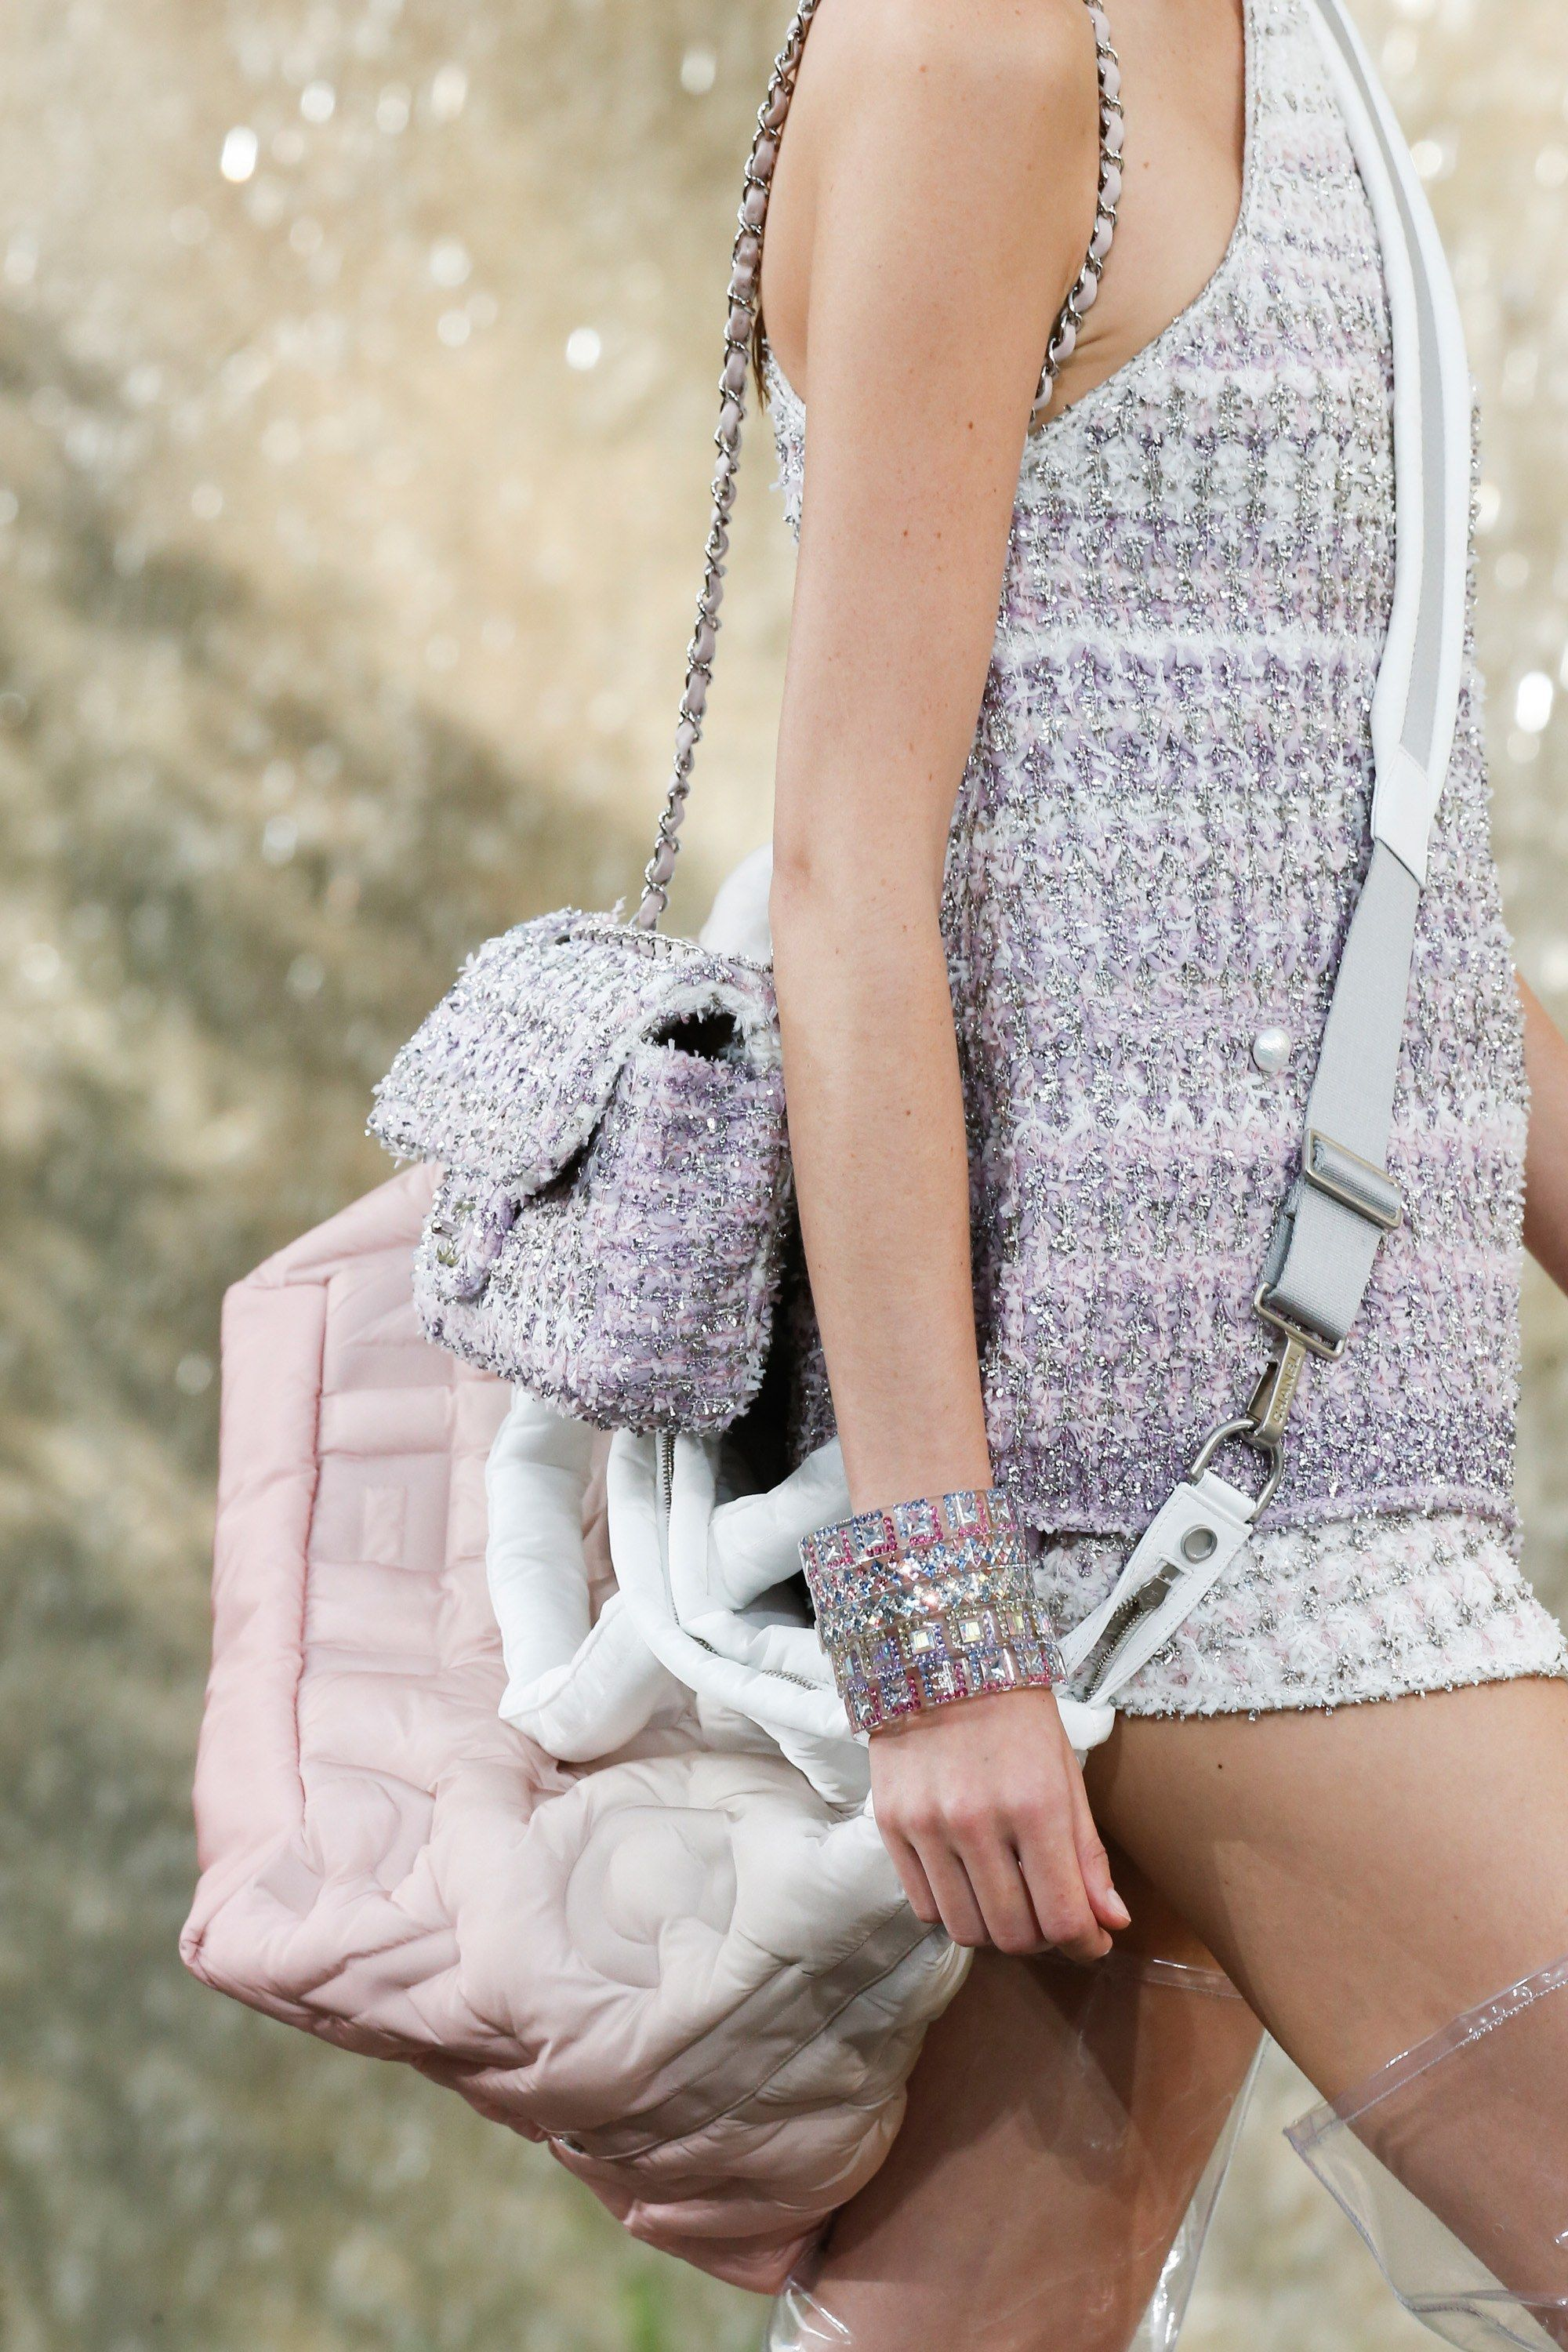 53522880ae7251 Chanel Purple Tweed Classic Flap and Chanel Doudoune Messenger Bag 2 - Spring  2018. See detail photos for Chanel Spring 2018 Ready-to-Wear collection.